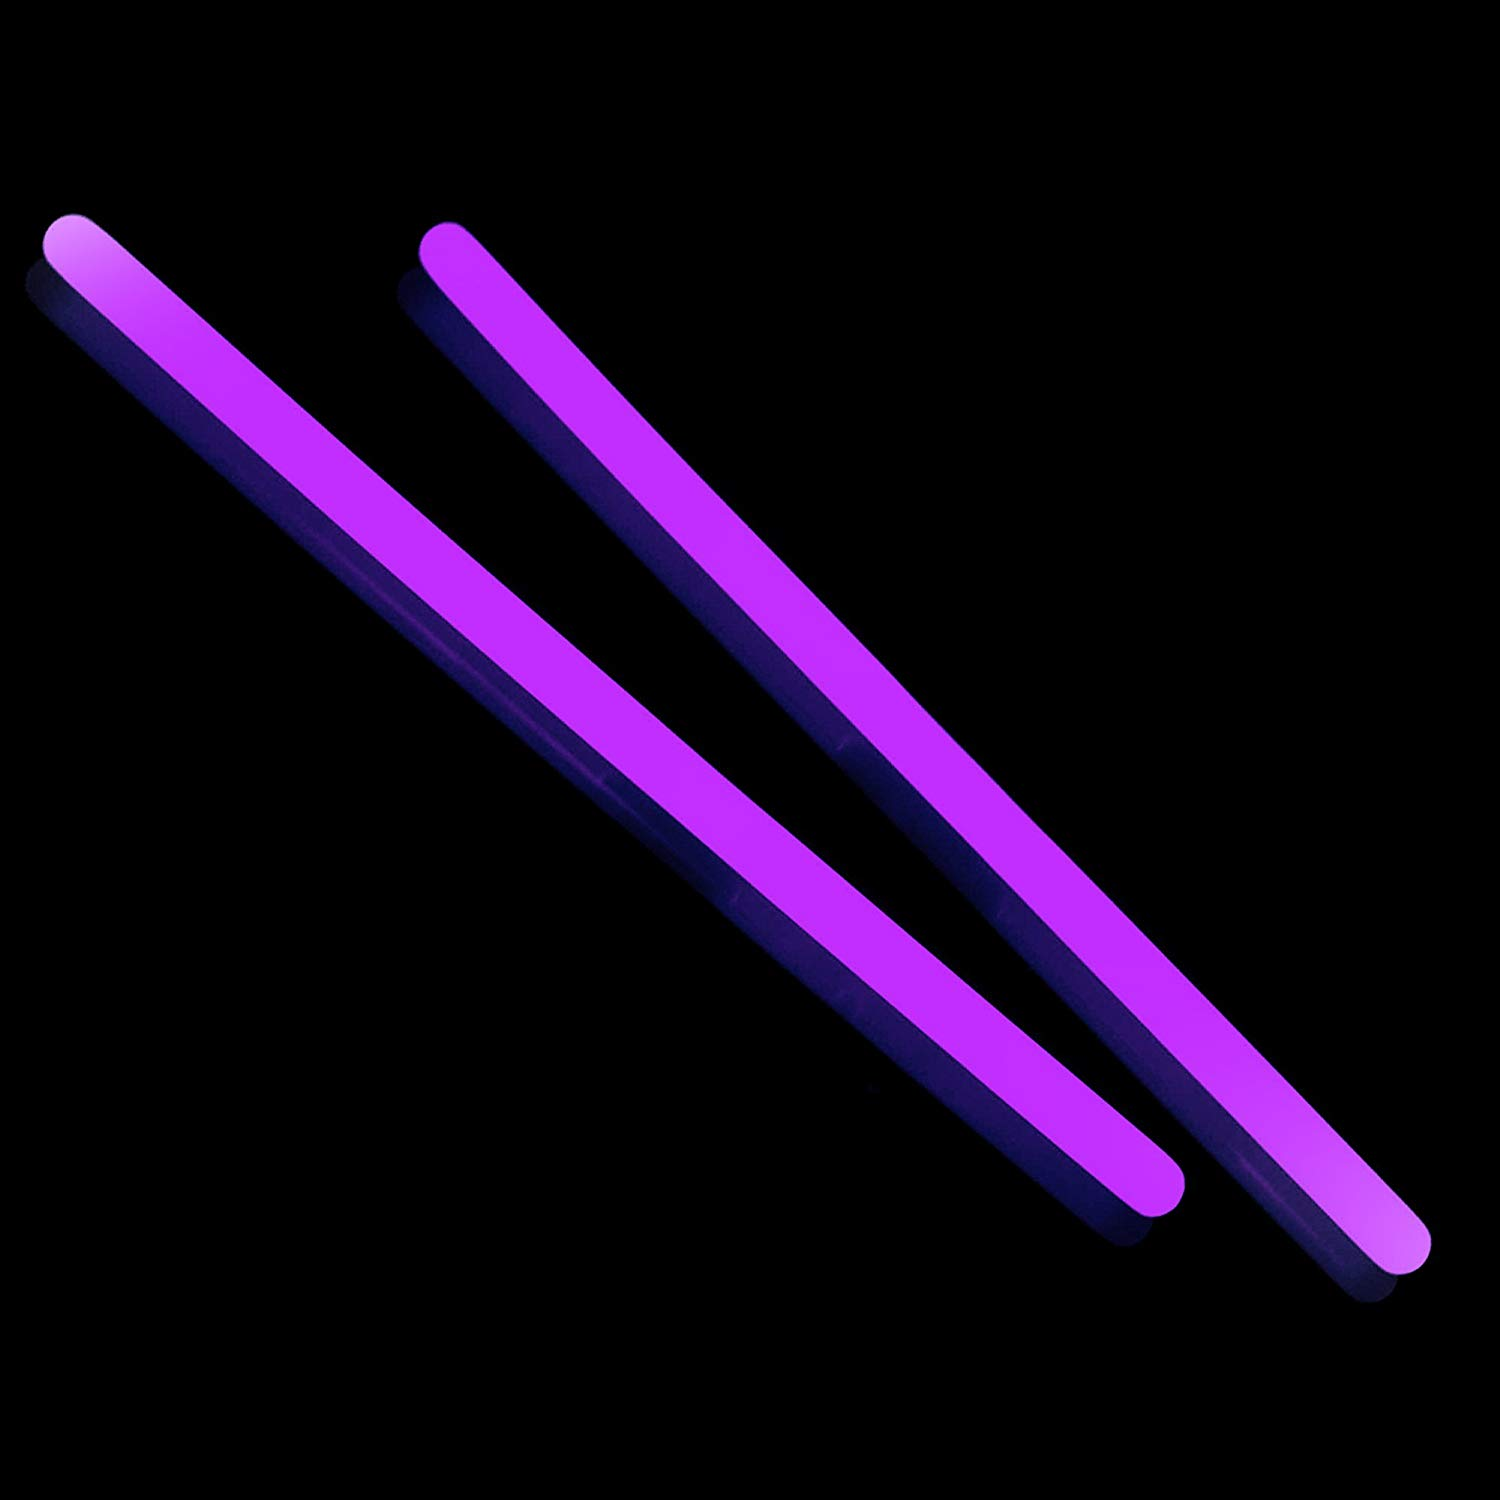 Fun Central F0 10 Inch Glow in the Dark Sticks - Purple